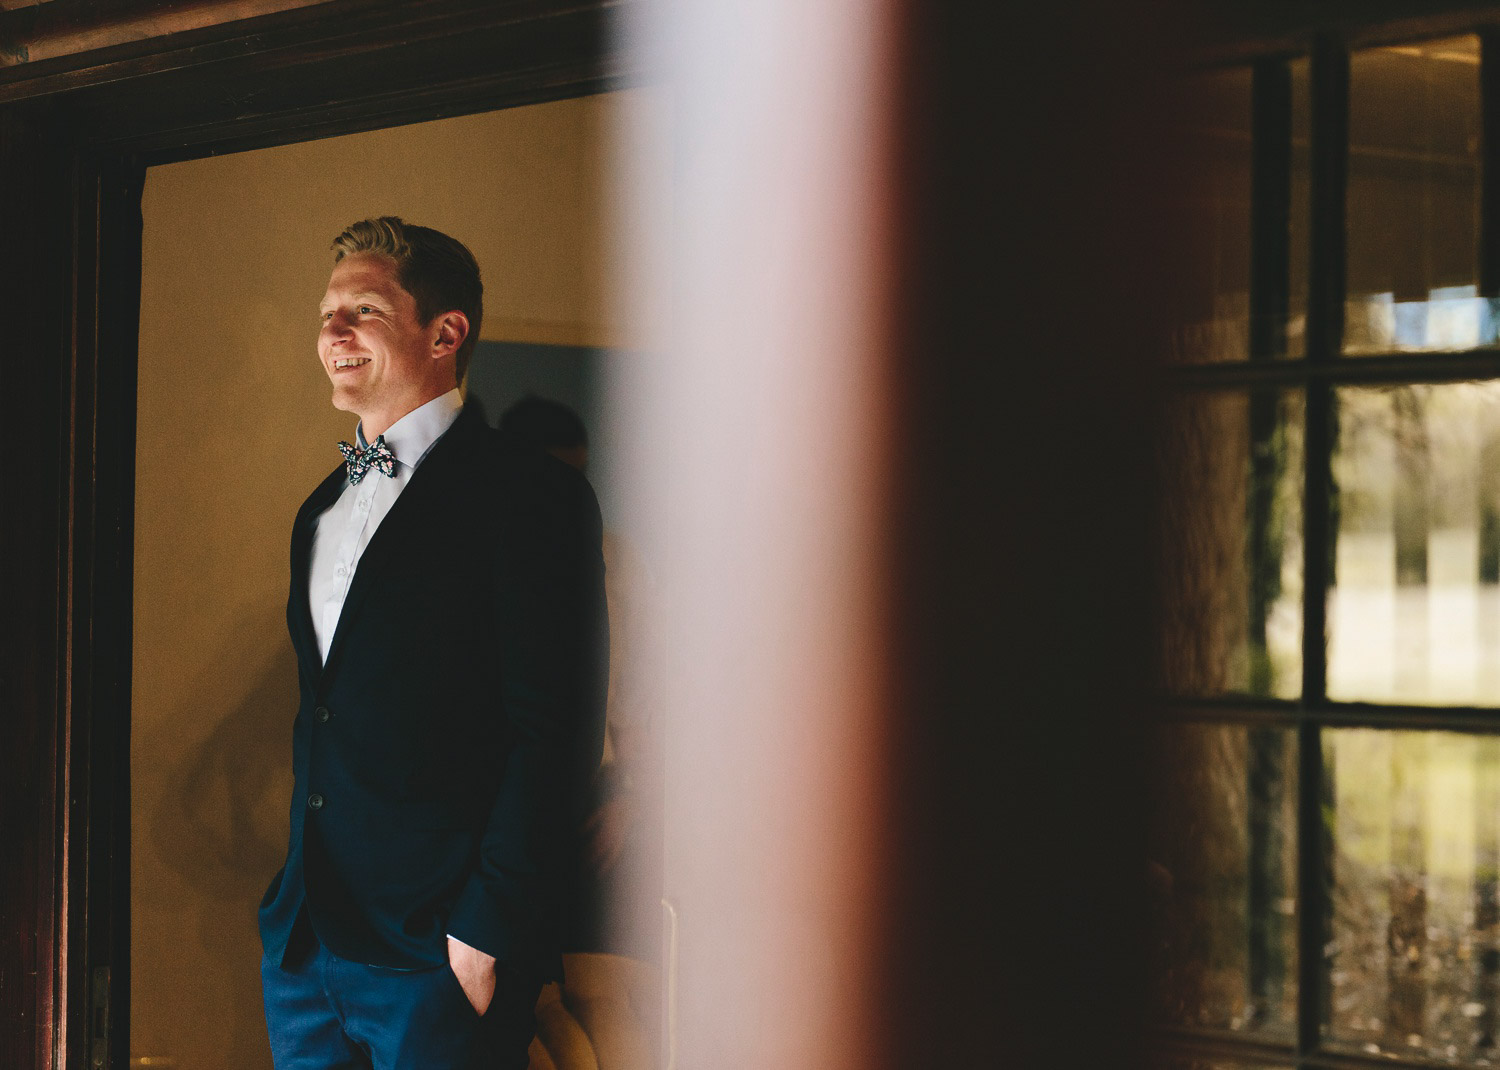 western-cape-photoghers-gen-scott-greyton-wedding-photography-charlie-ray31.jpg